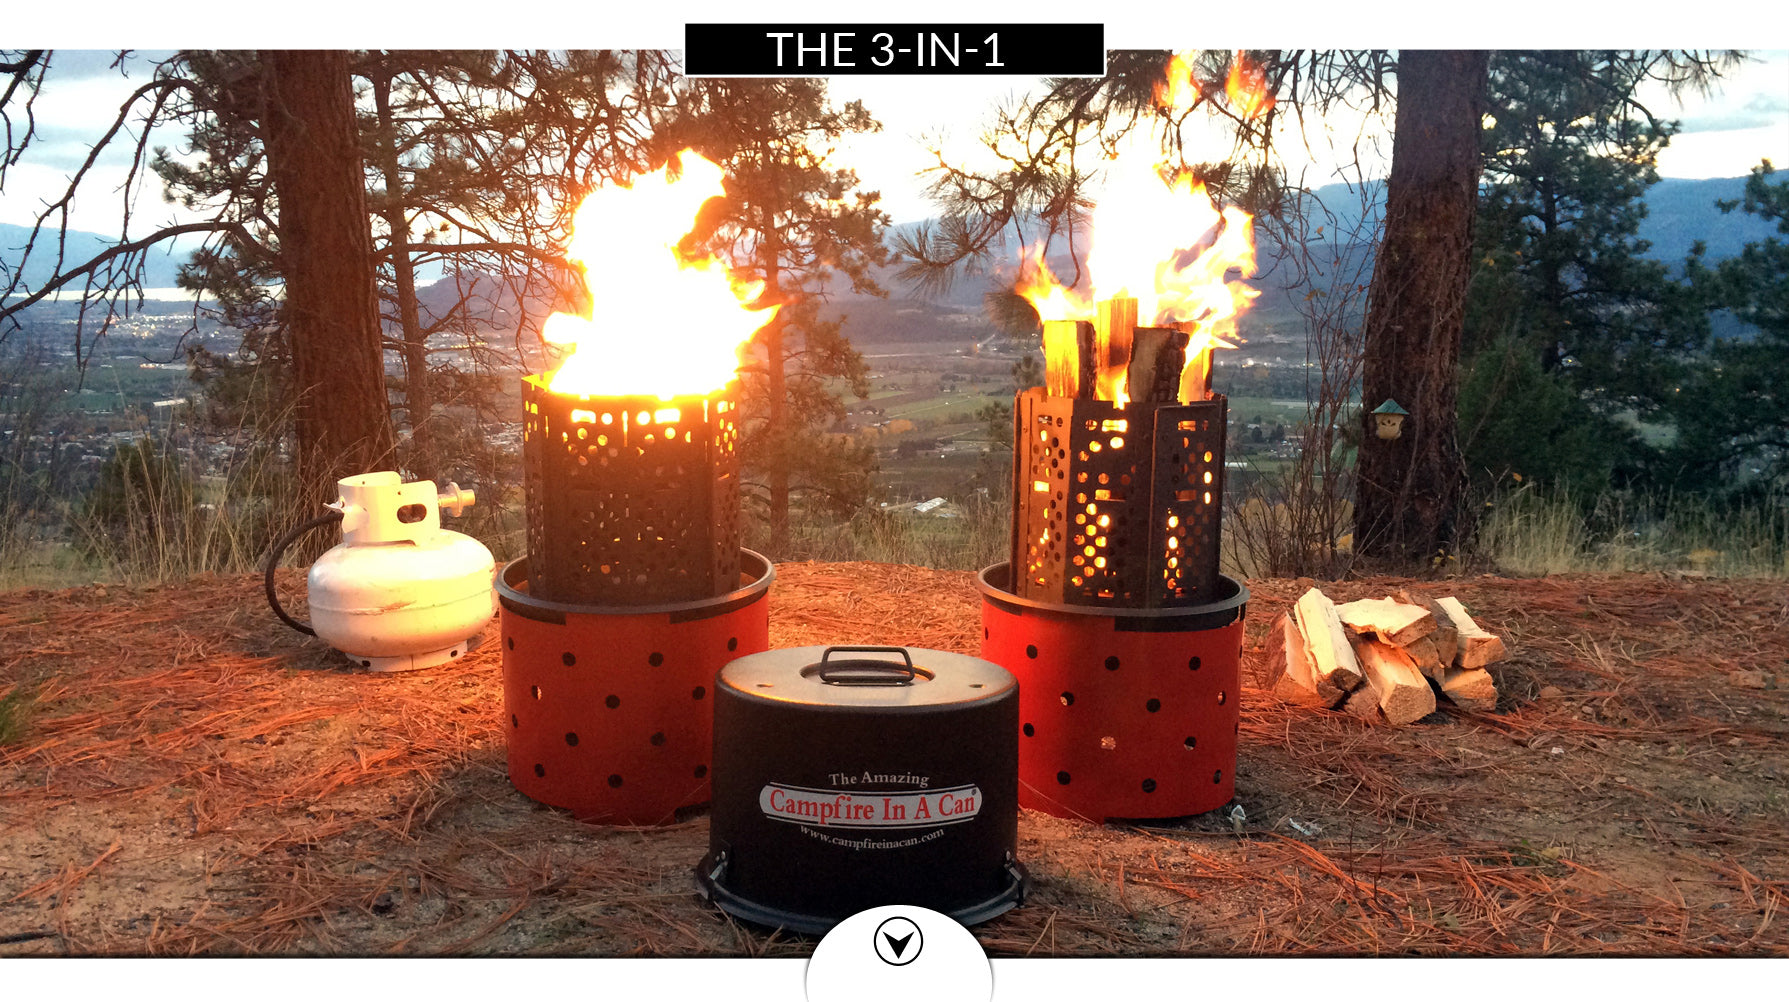 3-in-1 campfire in a can